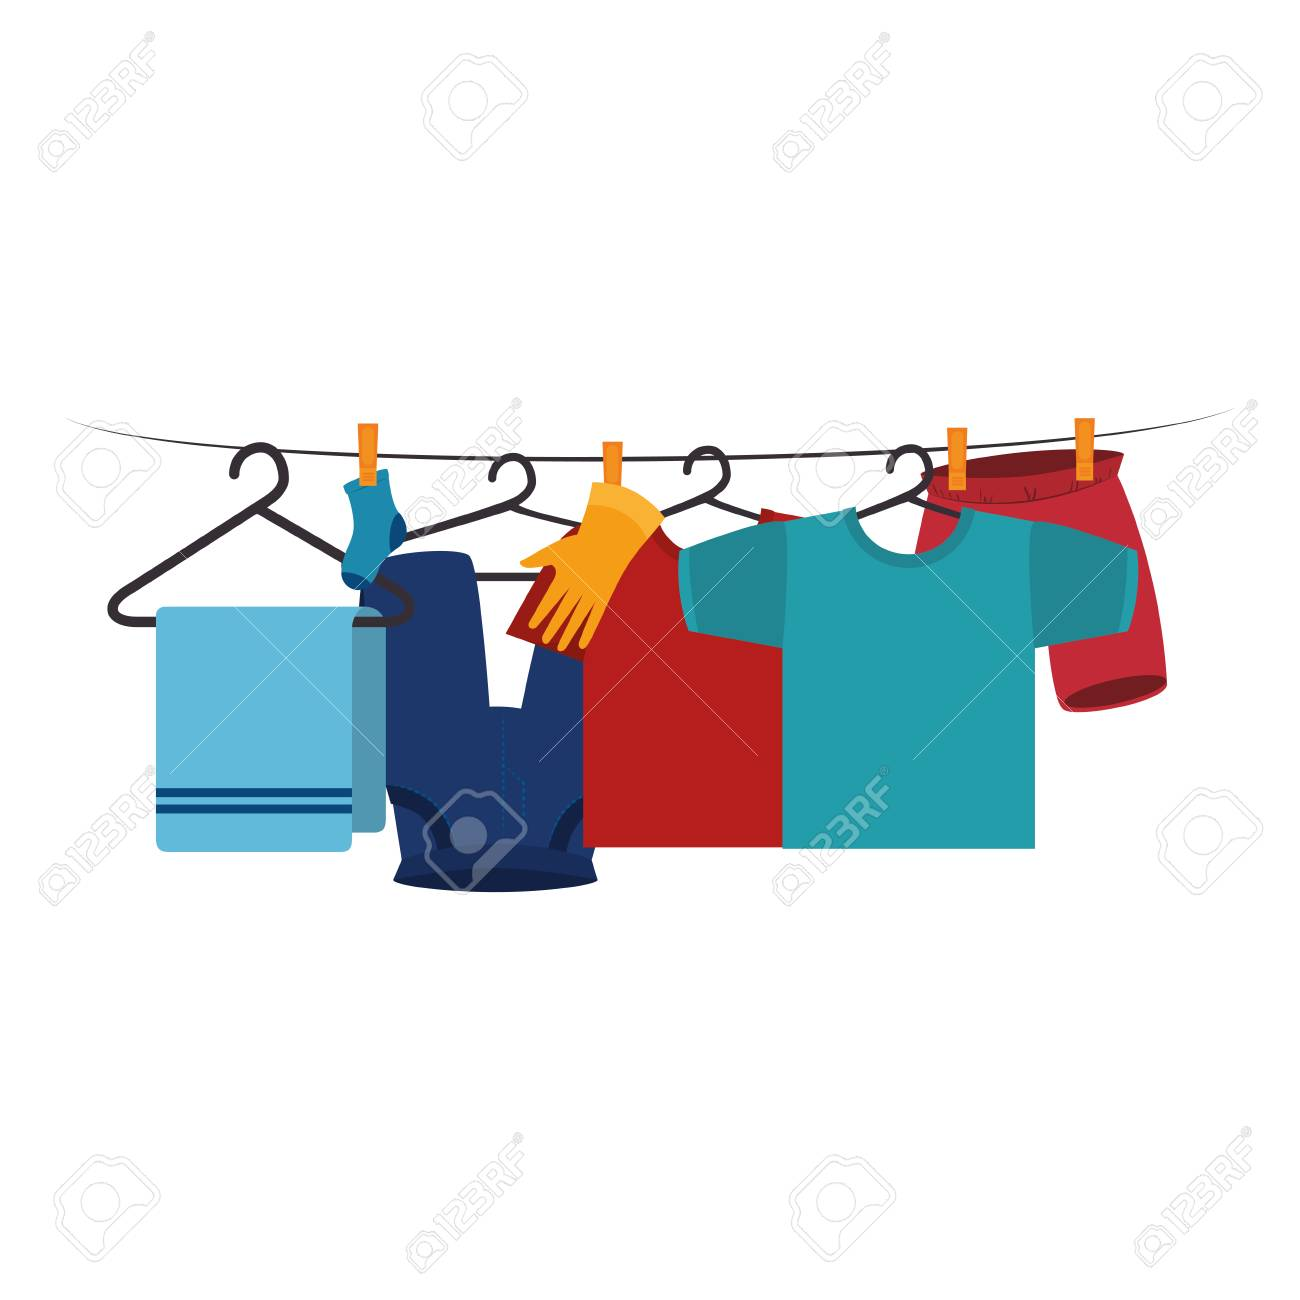 hight resolution of clothes drying on wire vector illustration design stock vector 104045907